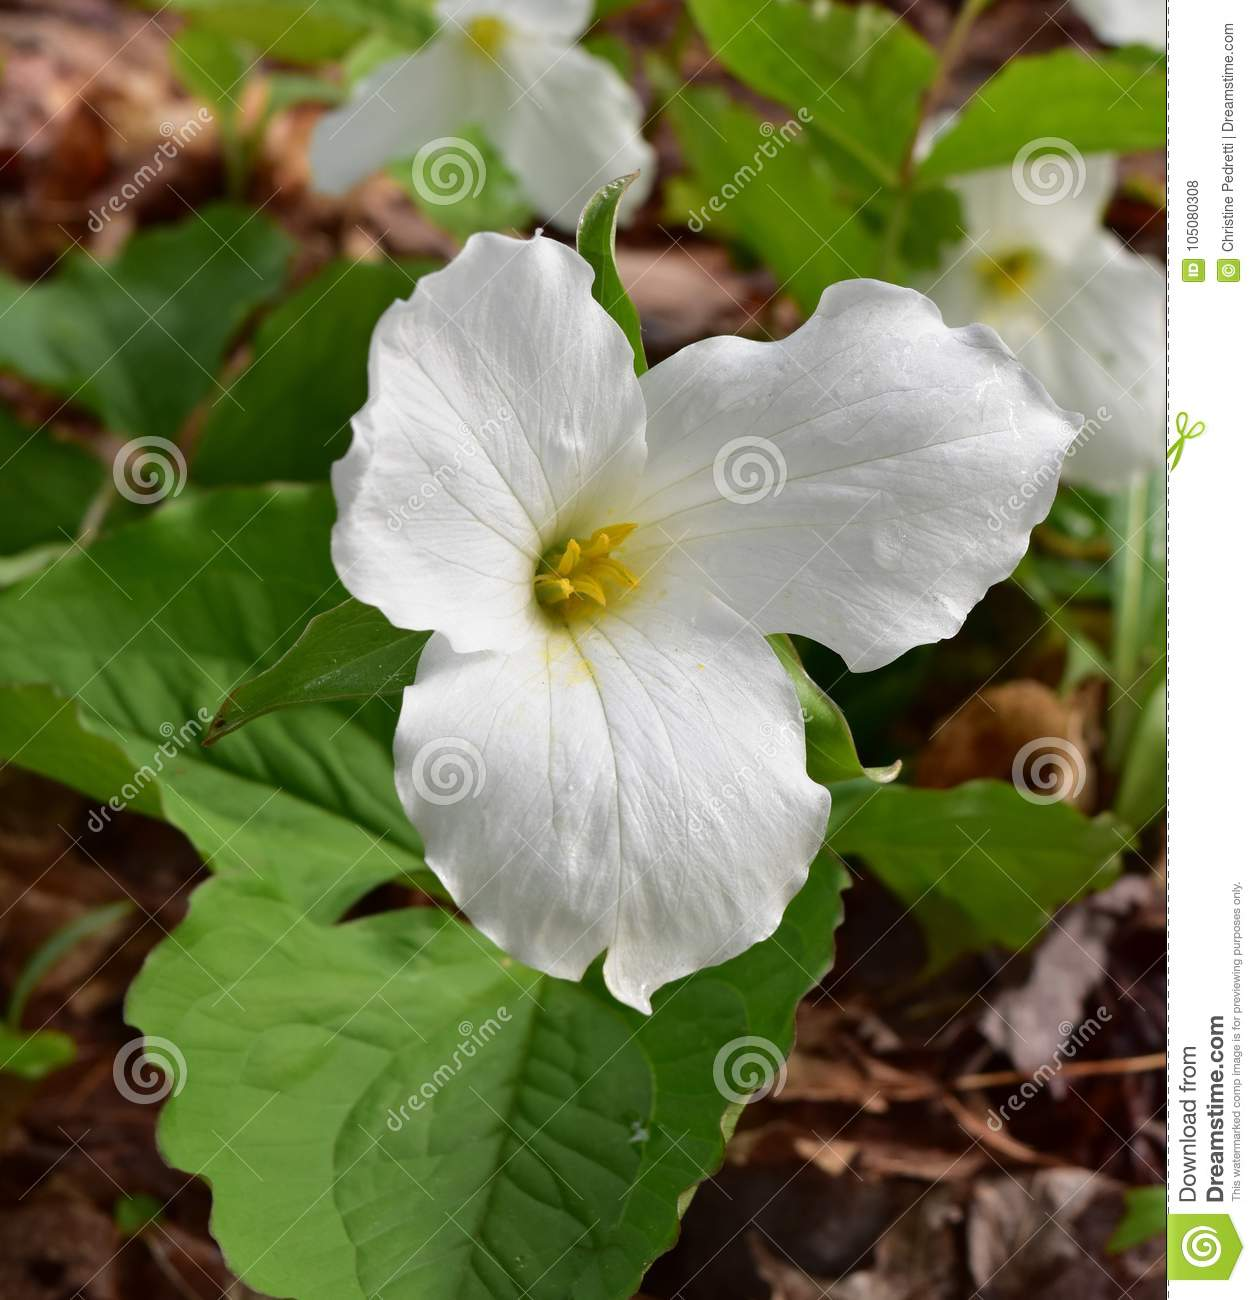 White Trillium Flower Speckled With Dew Stock Photo Image Of White